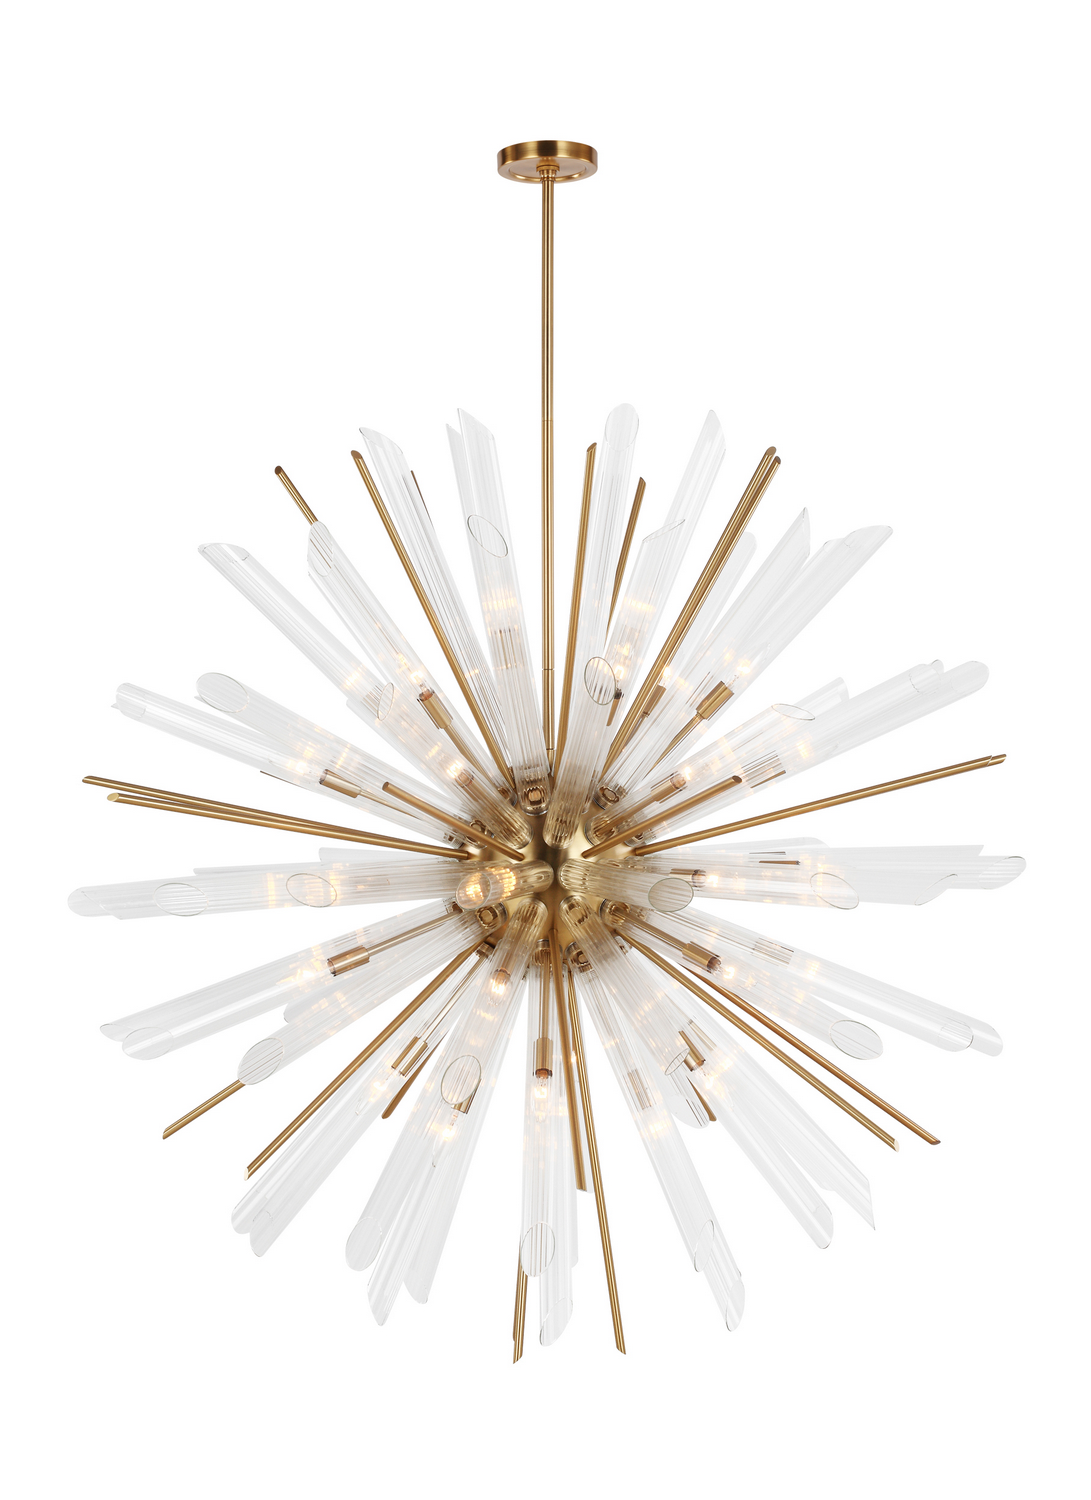 41 Light Chandelier from the Quorra collection by Feiss F318341BBS